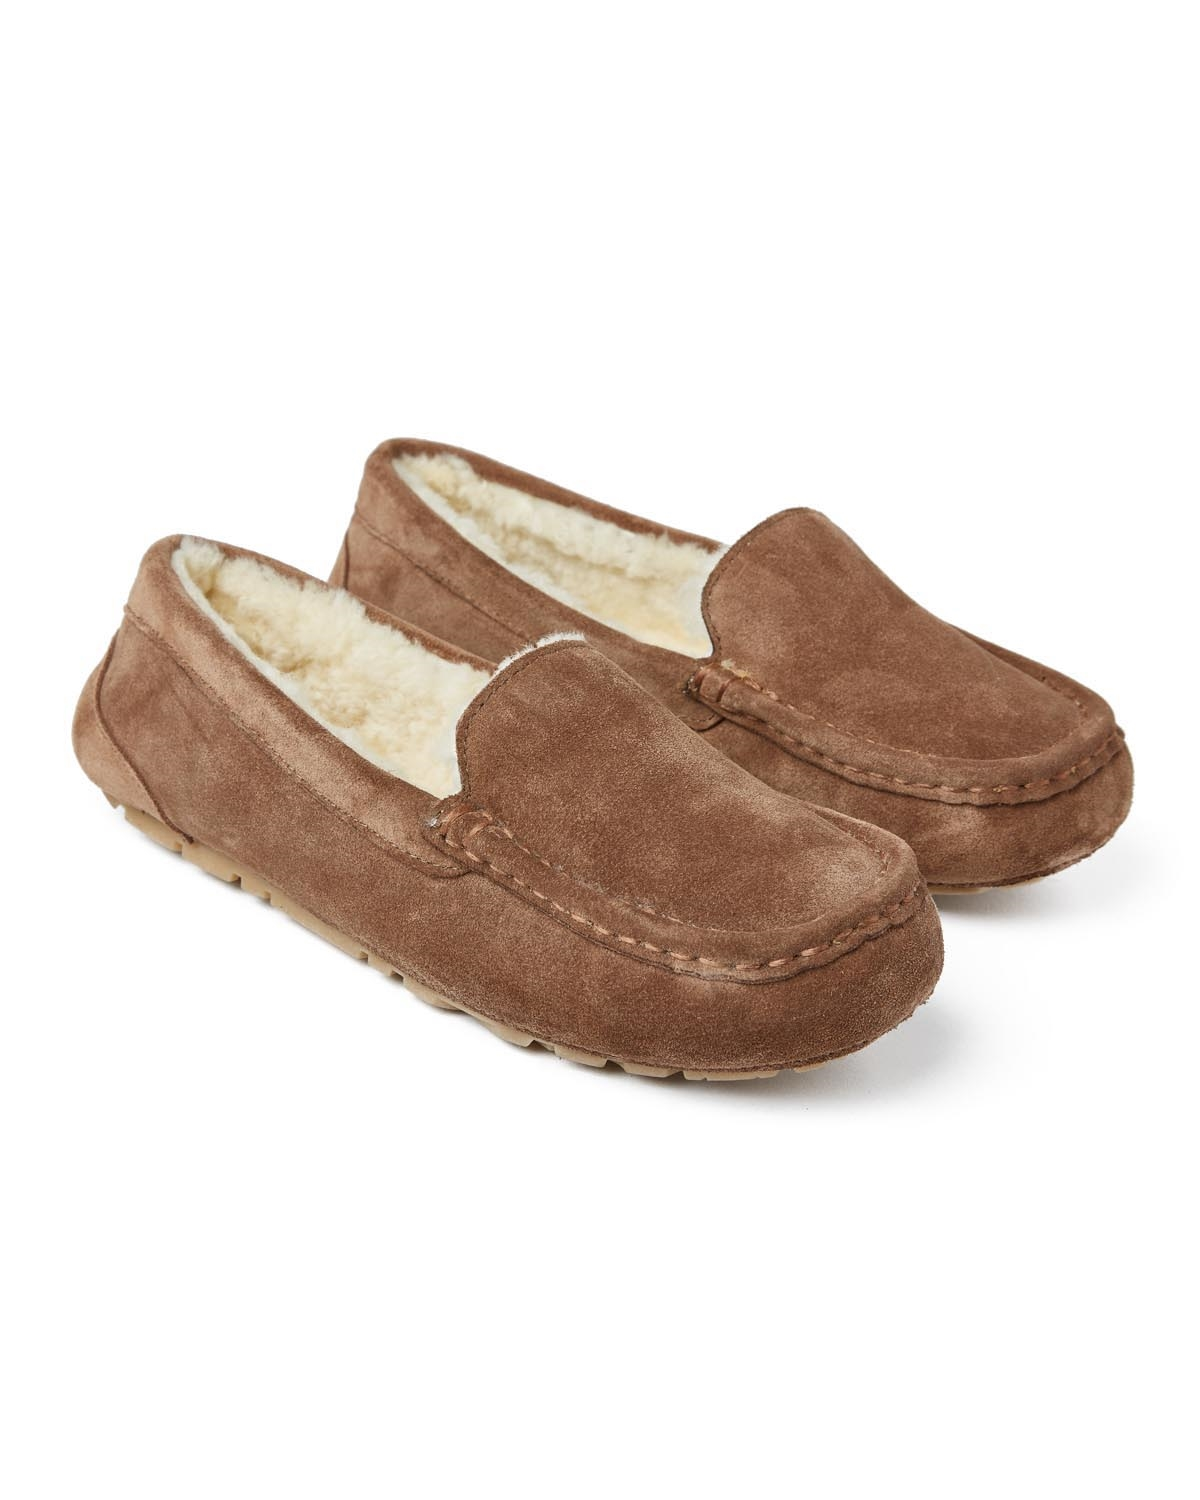 l loafer taupe pair.jpg